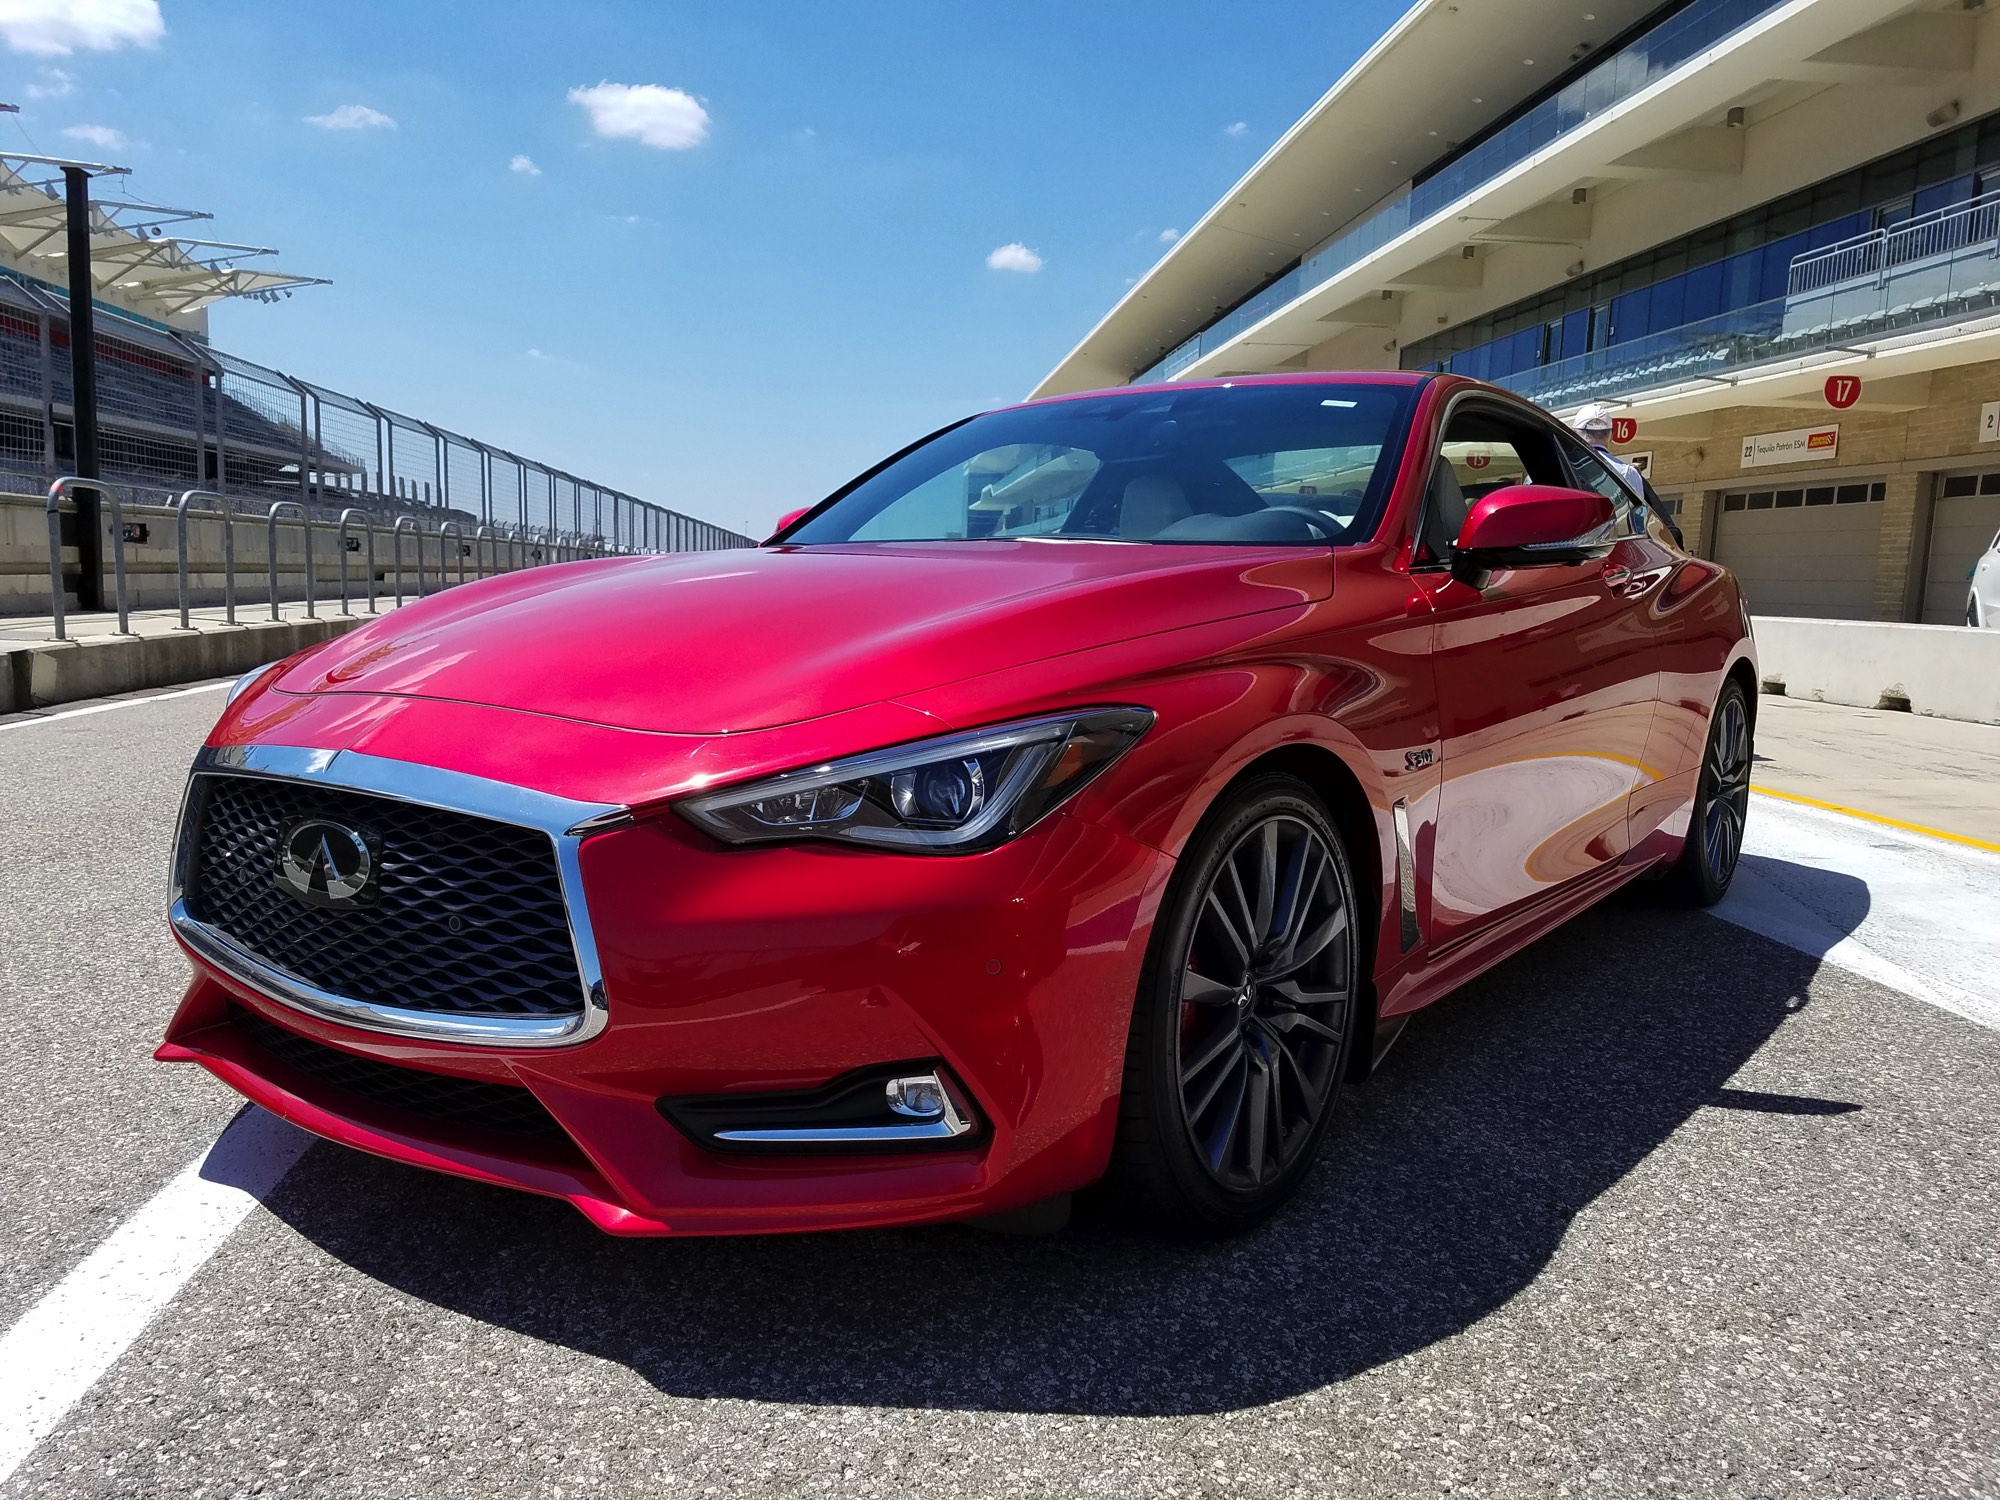 2017 infiniti q60 red sport 400 the lady in red txgarage. Black Bedroom Furniture Sets. Home Design Ideas